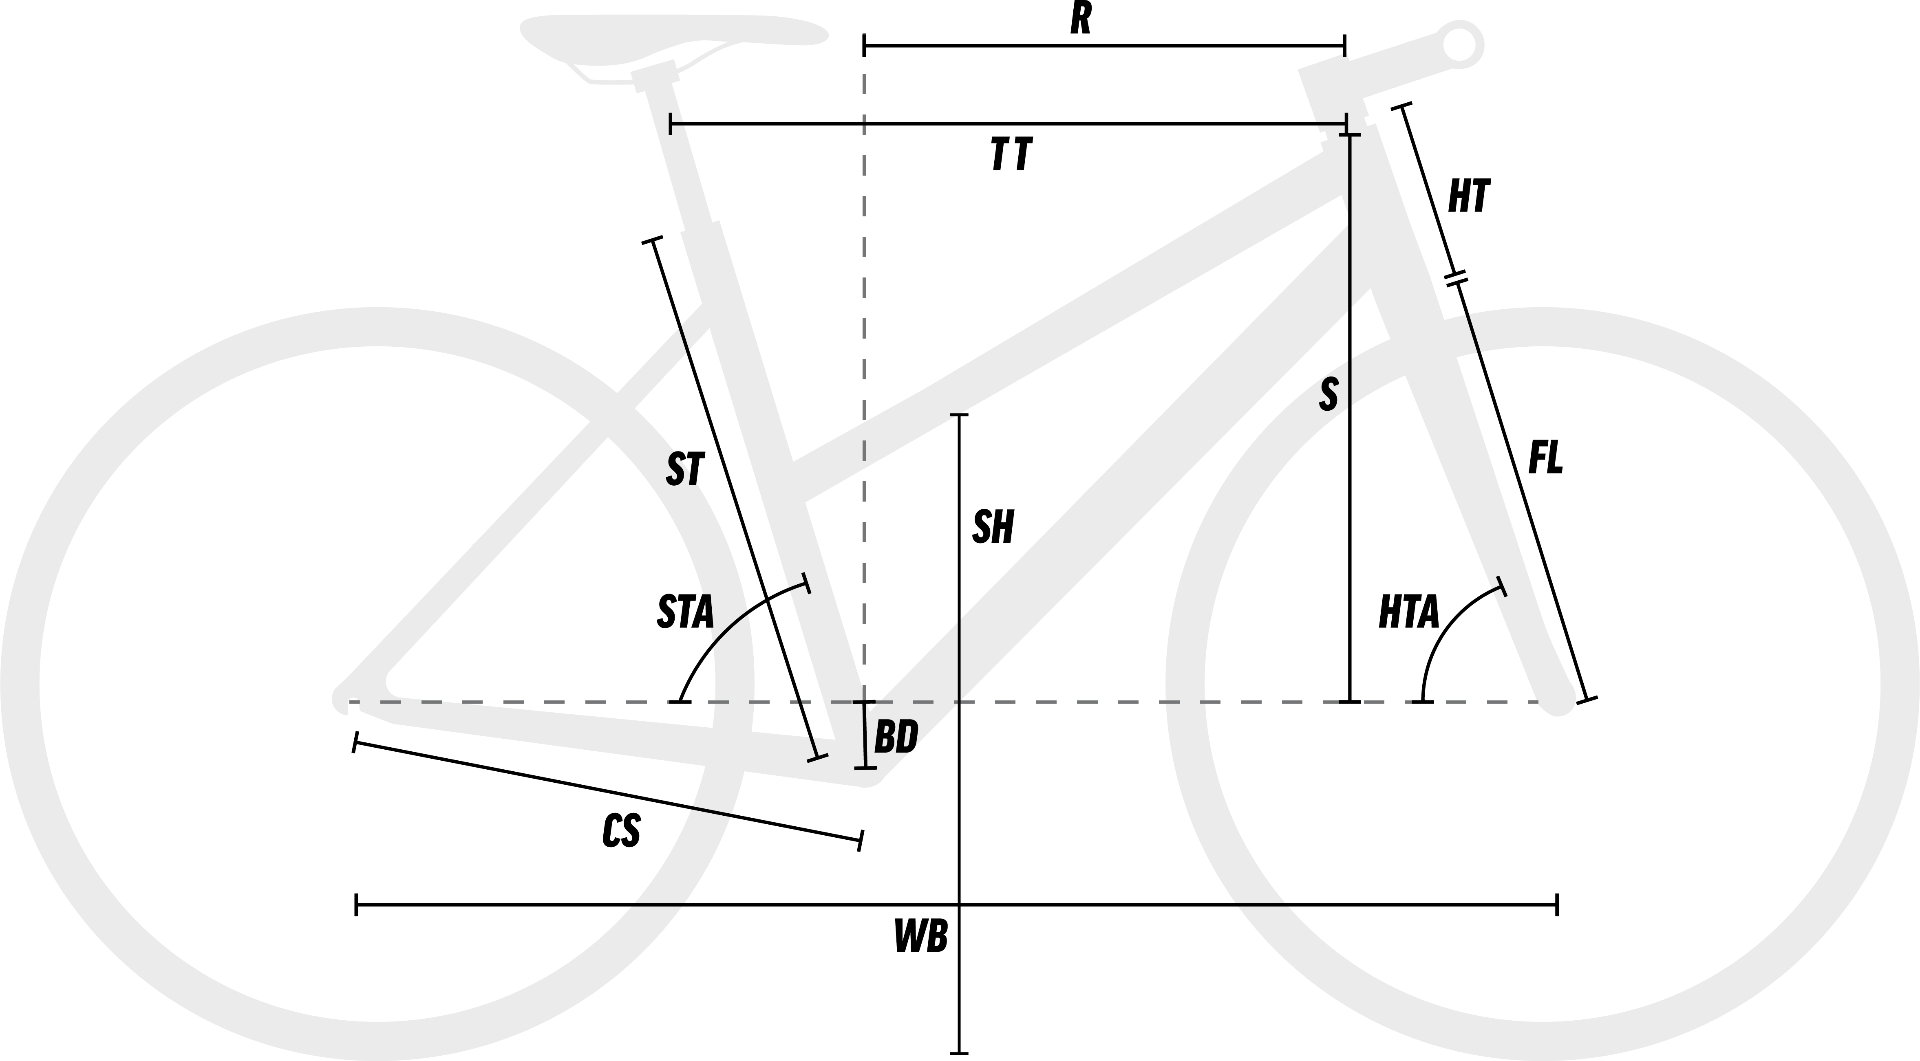 Womens Flat Bar Road Bike Geometry Diagram